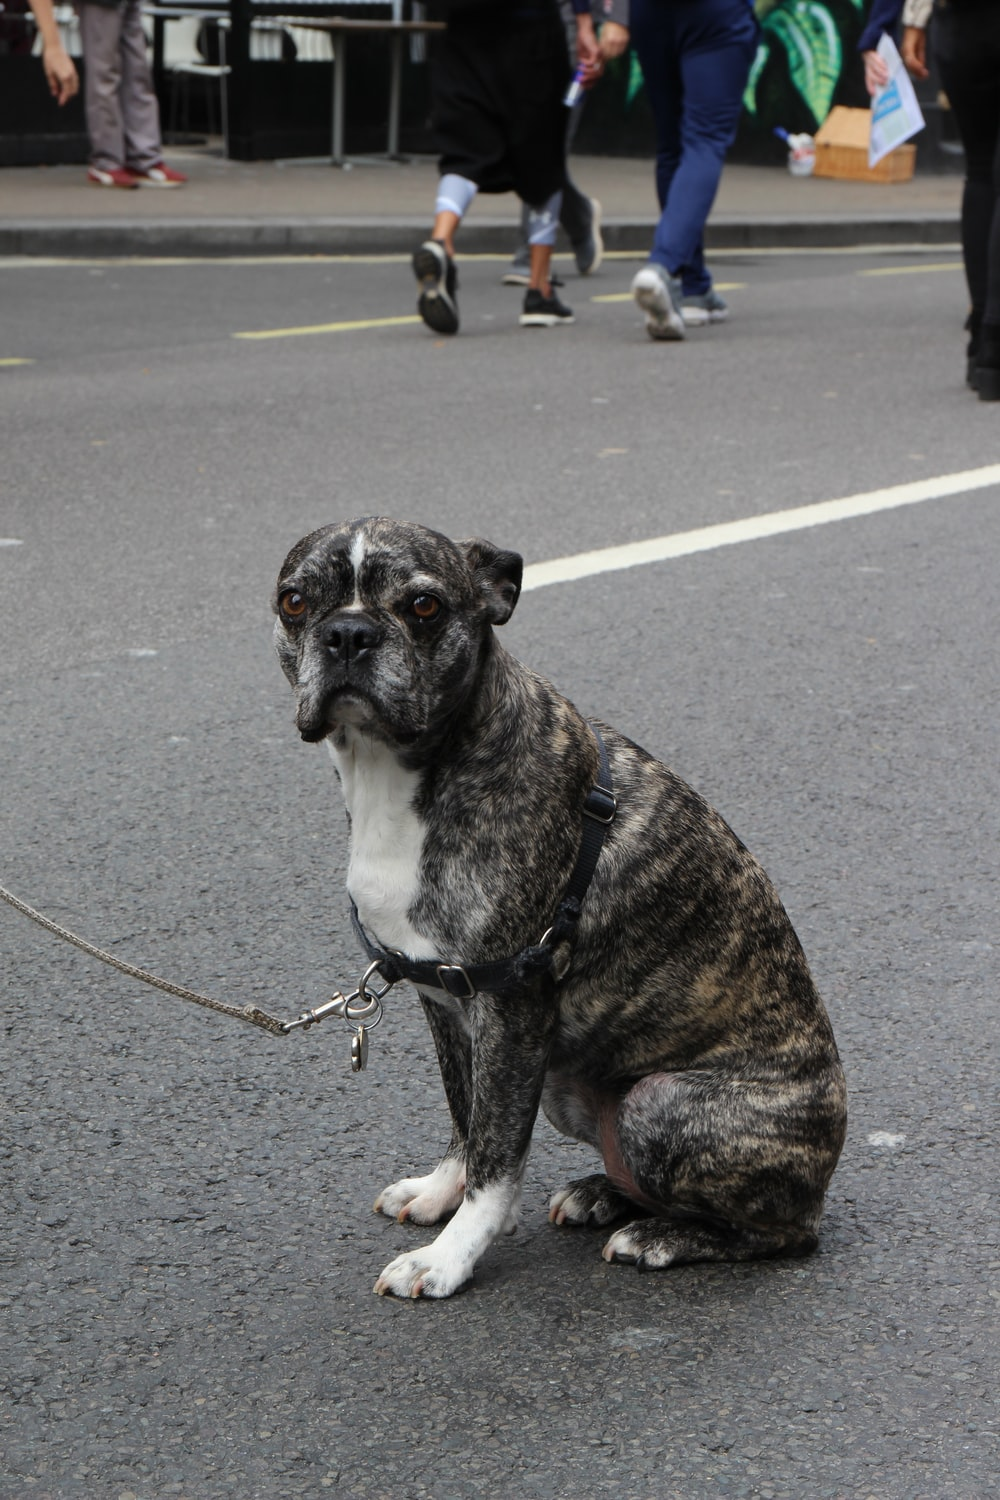 brown and white short coated dog on gray asphalt road